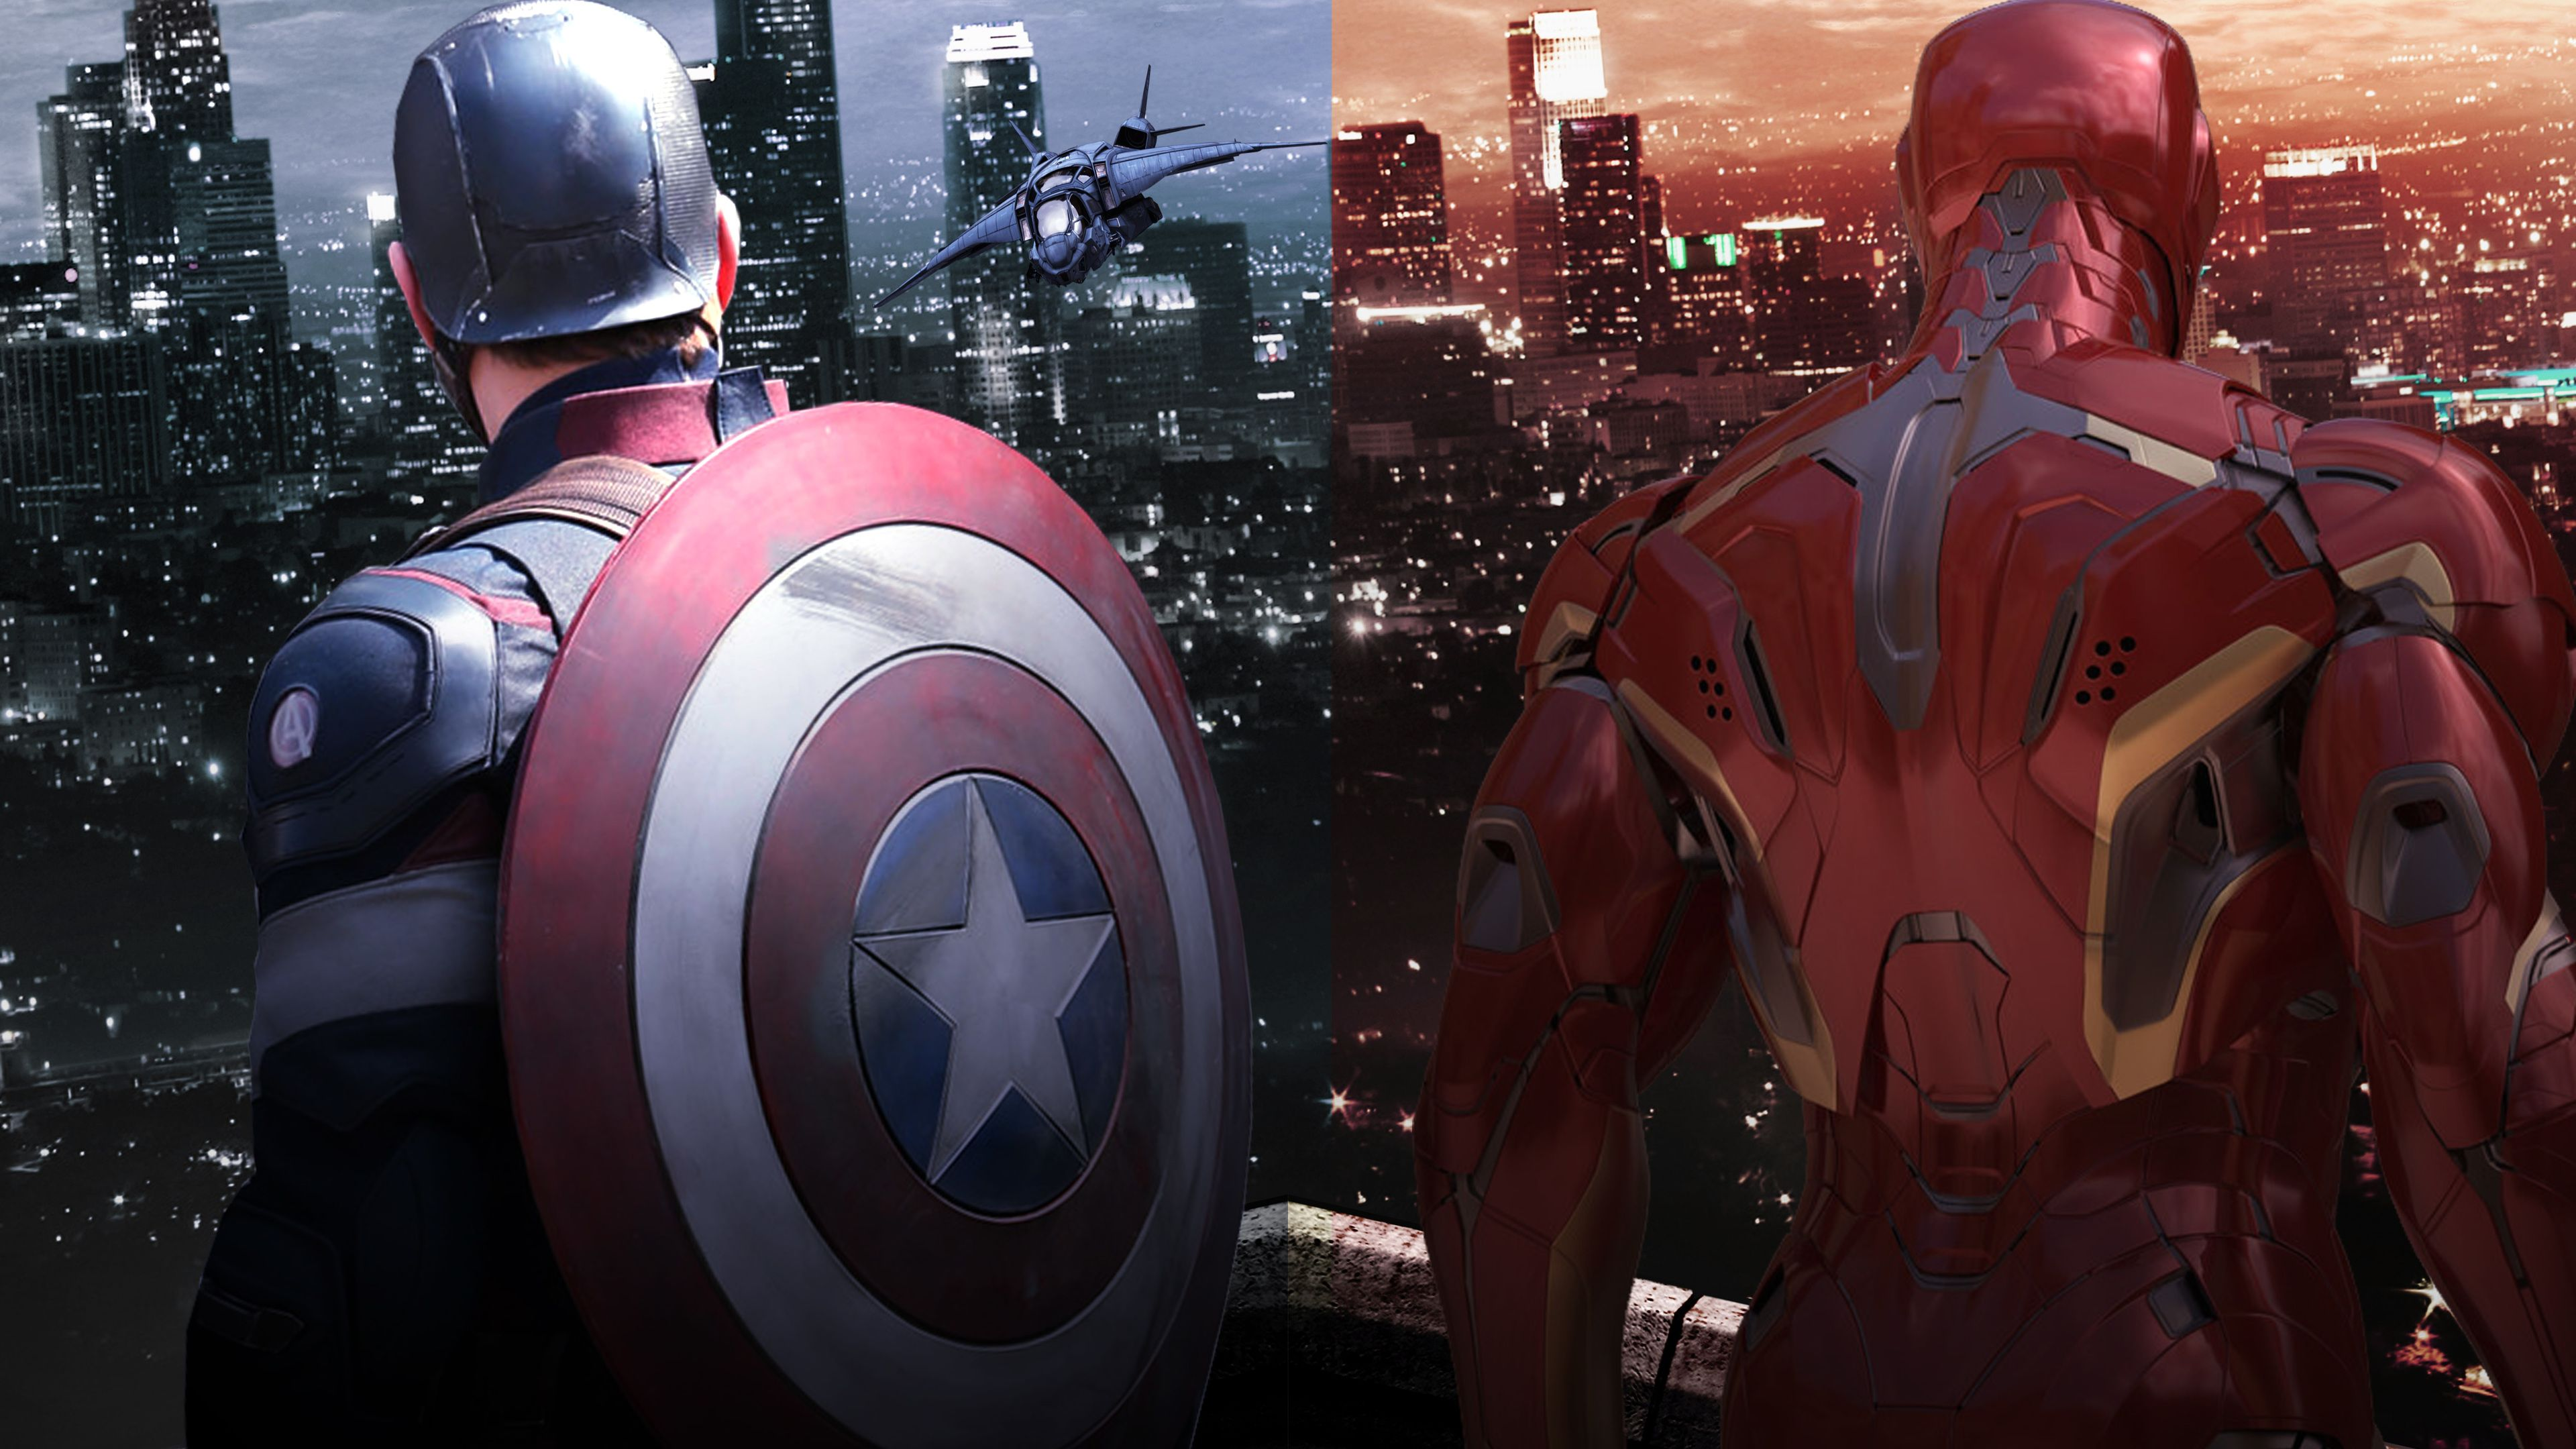 Captain America Shield And Iron Man Superheroes Wallpapers Shield Wallp Iron Man Vs Captain America Captain America Shield Wallpaper Captain America Wallpaper